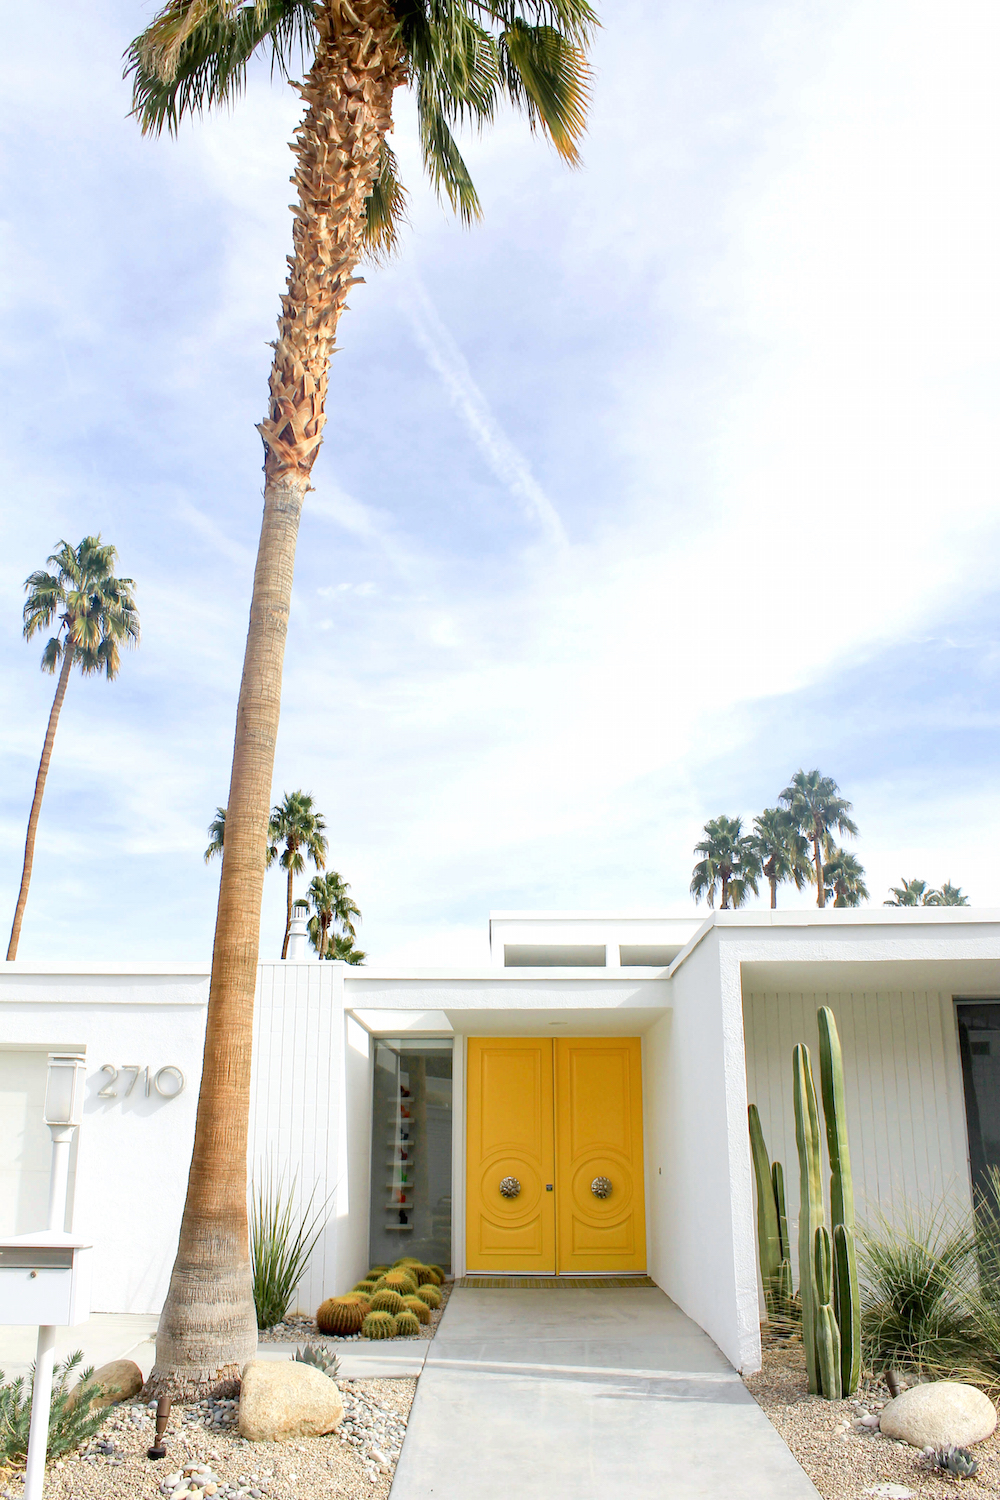 5 questions to ask before buying a home doors palm and for Buy house palm springs